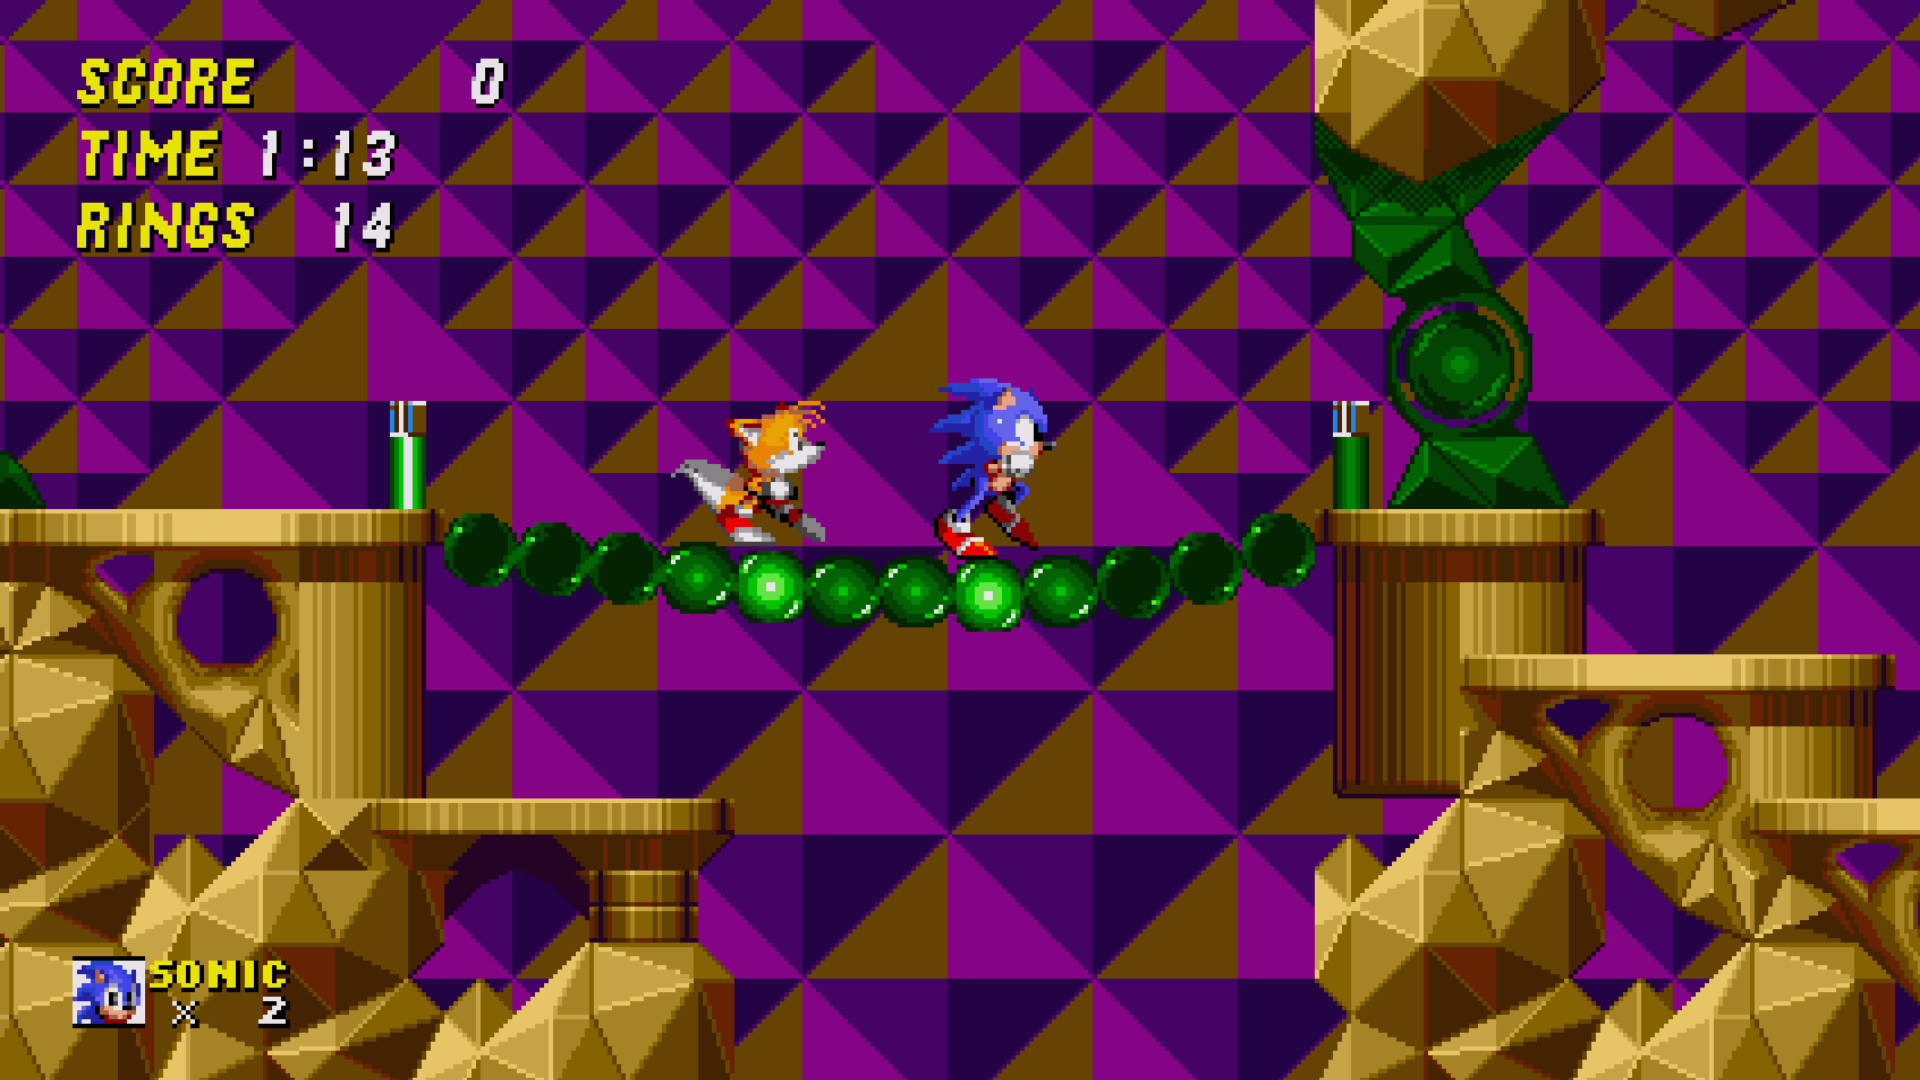 Sonic The Hedgehog 2 Classic screenshot 12